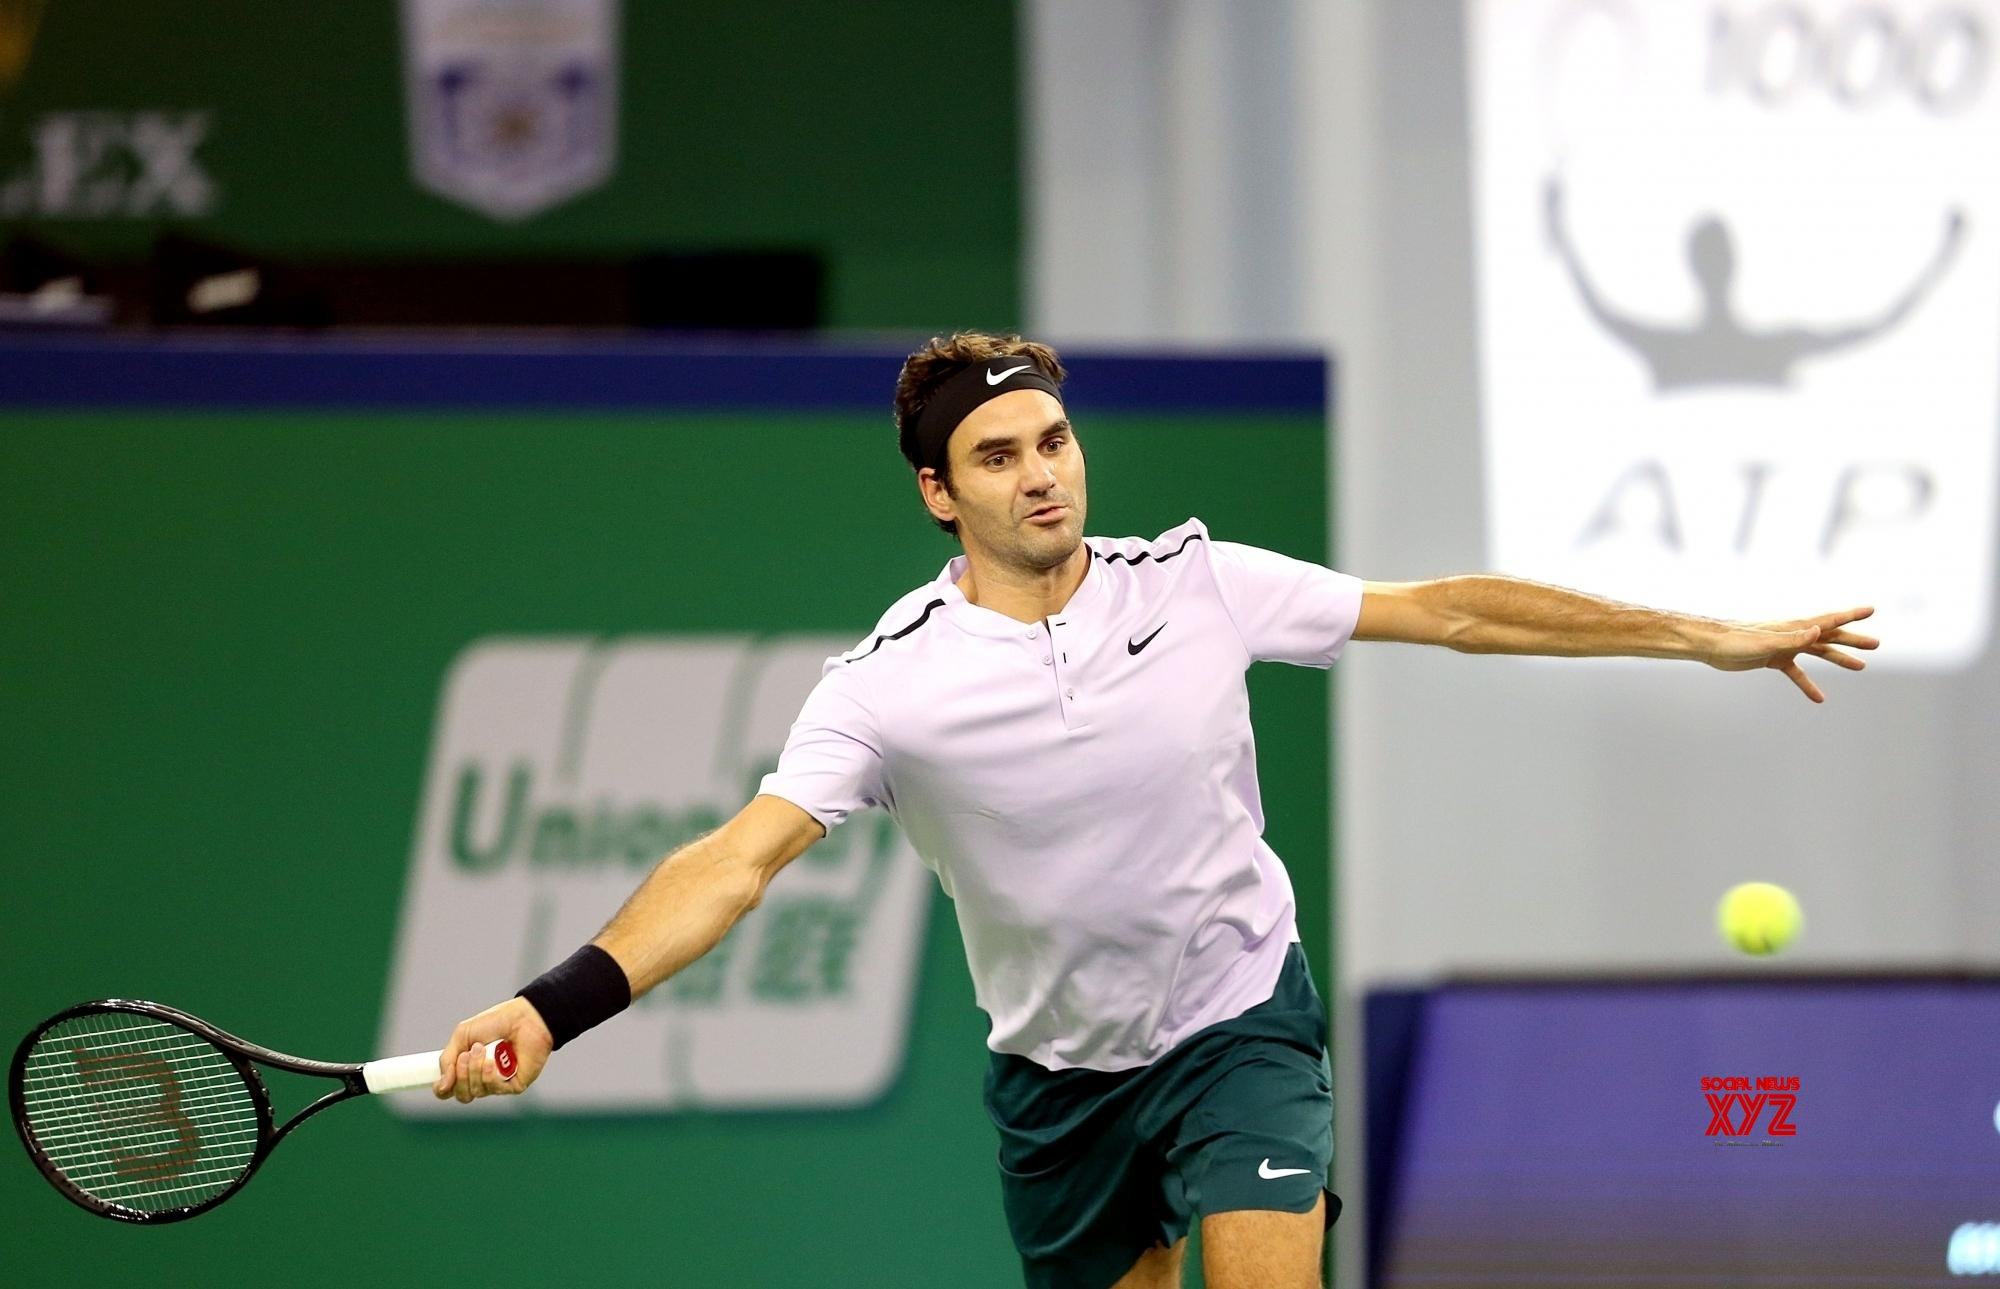 Federer kicks off Rome Open run with victory